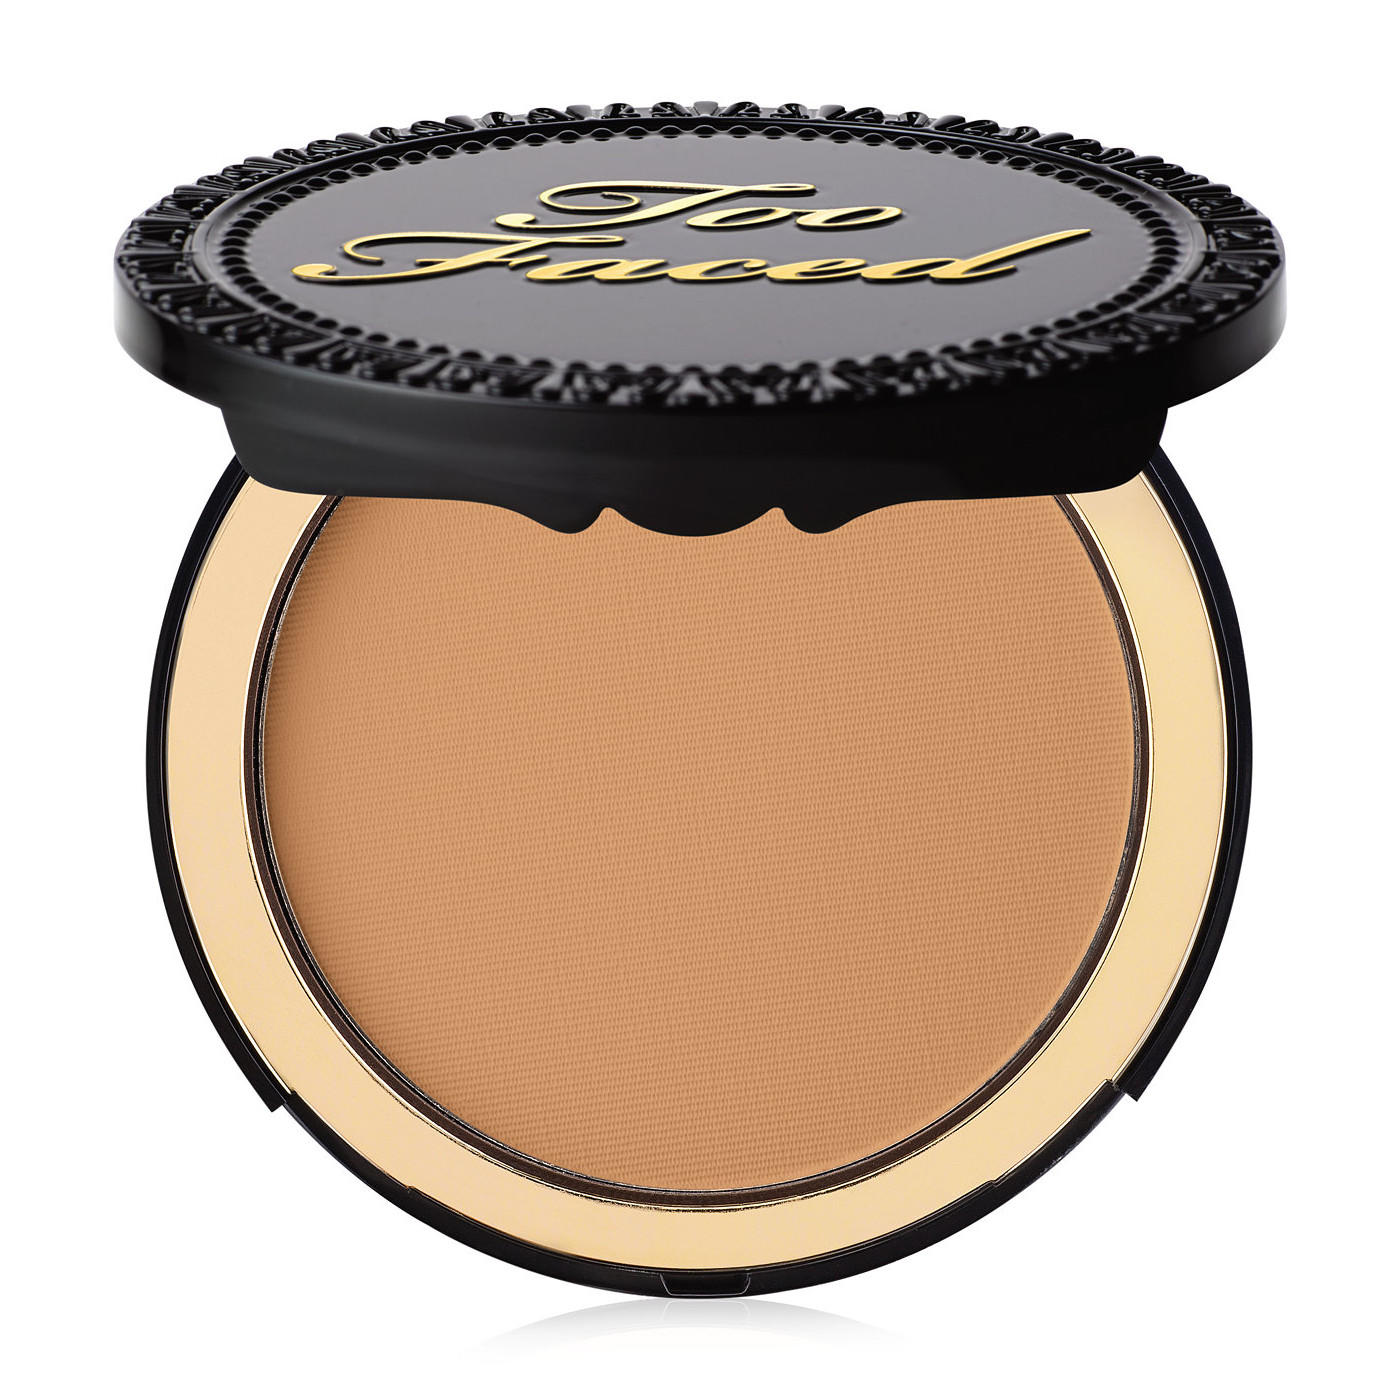 Too Faced Cocoa Powder Foundation Tan